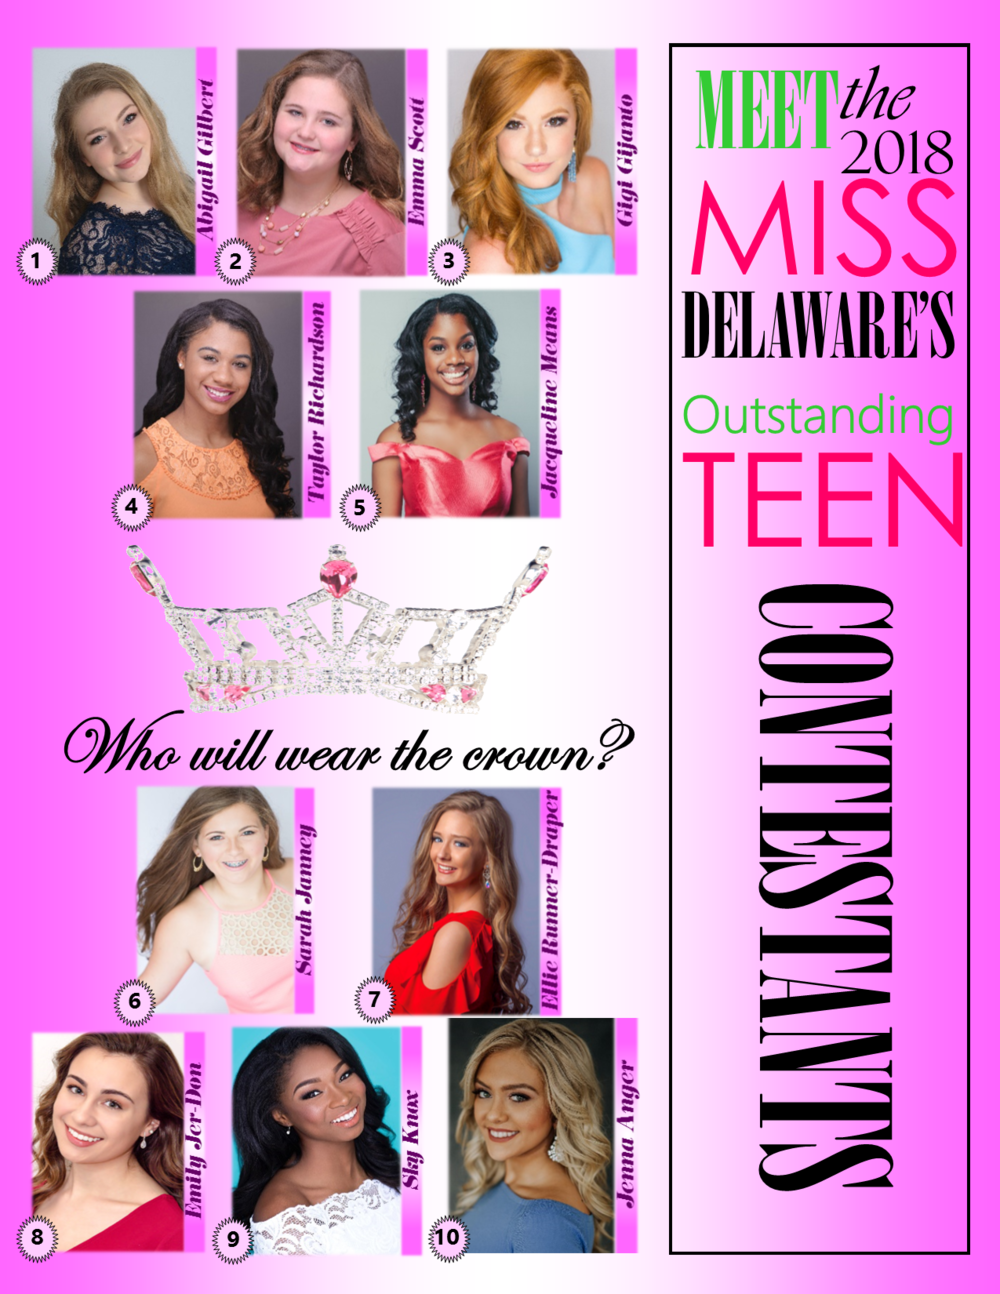 Meet The Contestants Pages - TEEN.png